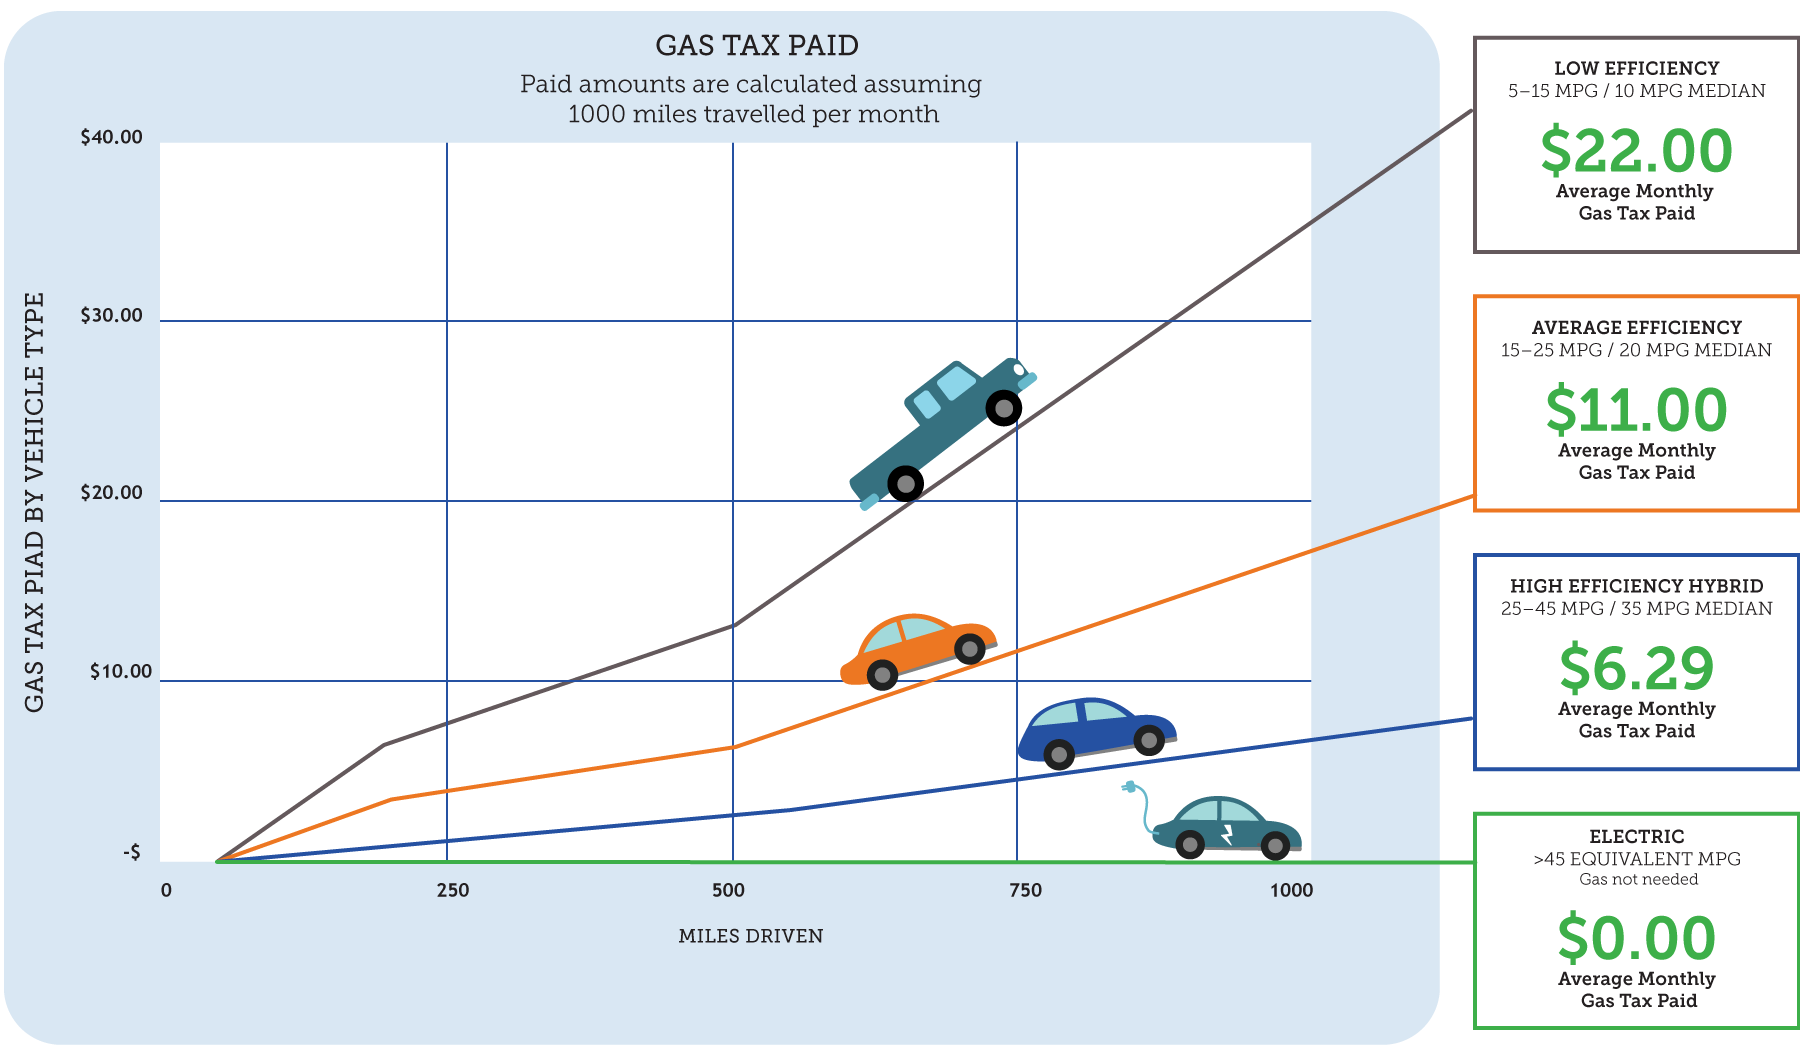 Gas Tax Paid by Vehicle